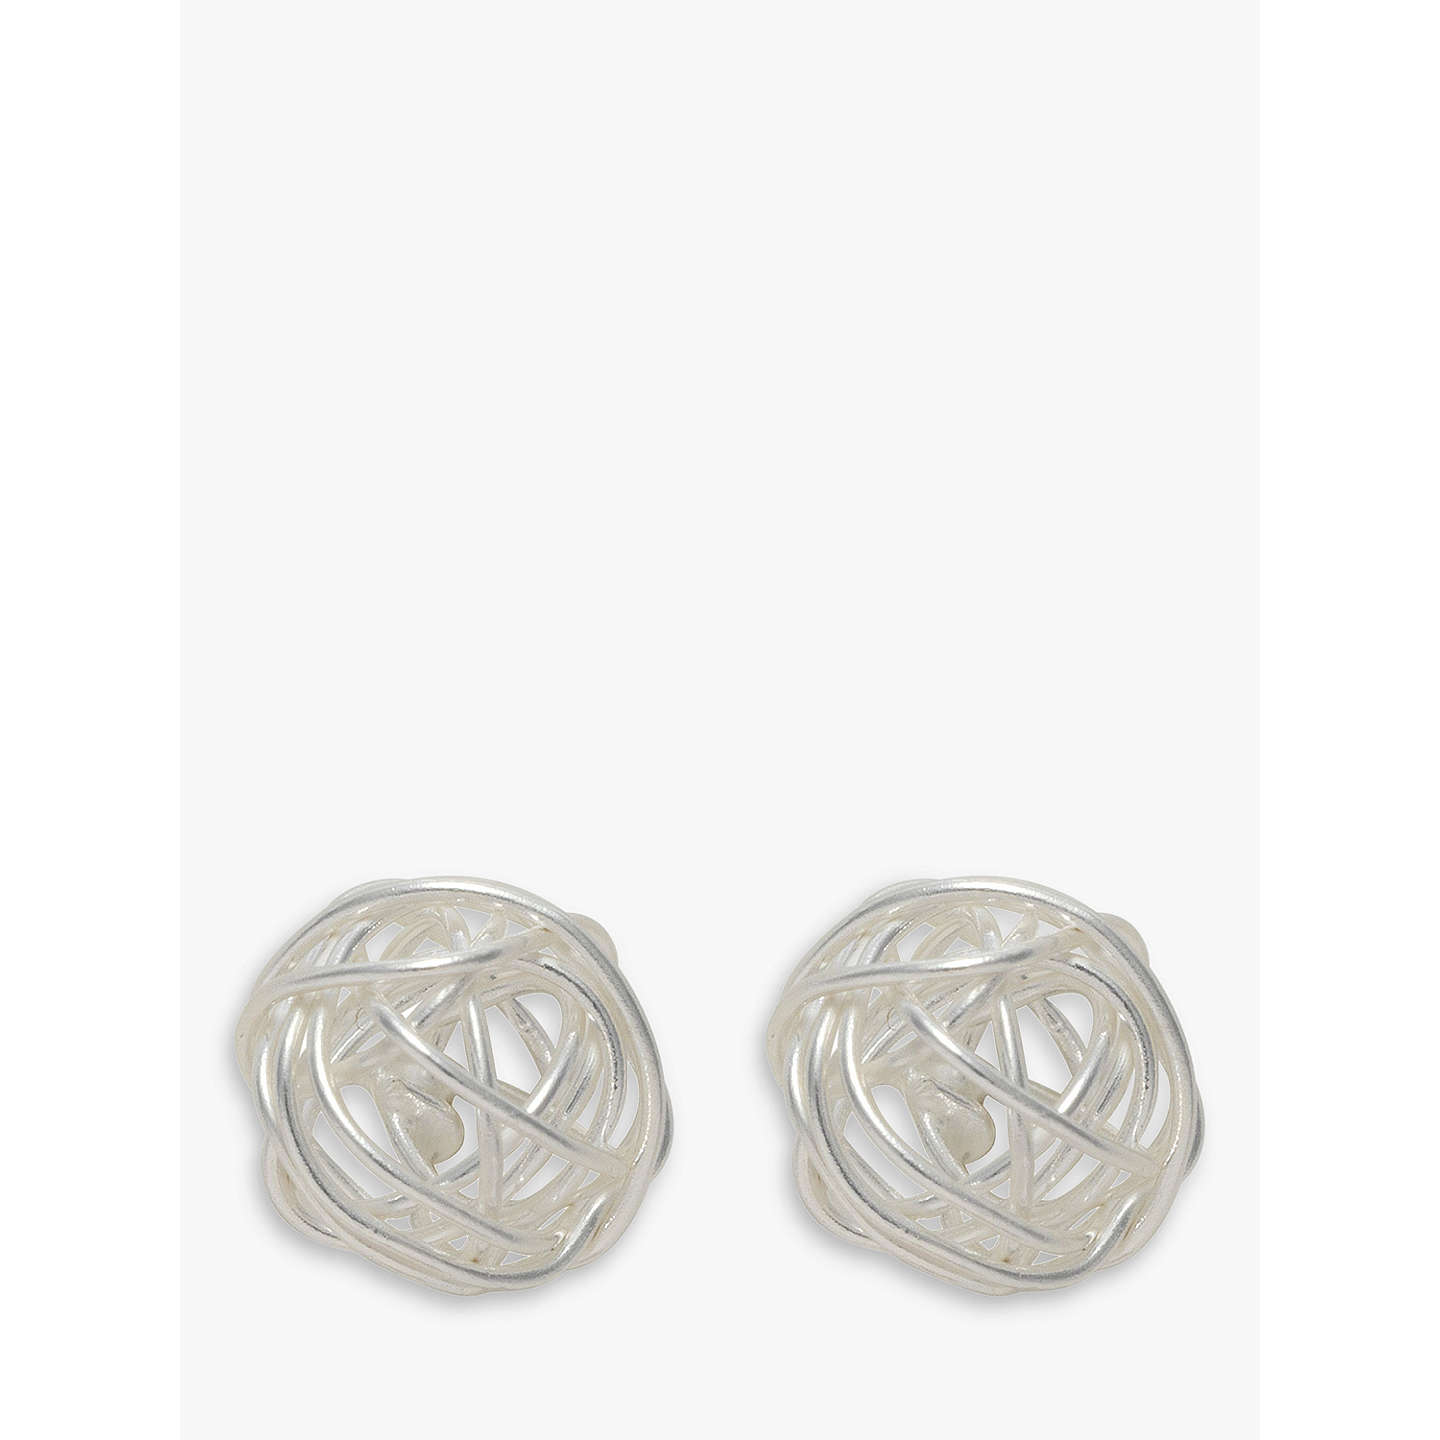 Nina B Silver Wire Ball Stud Earrings, Silver at John Lewis